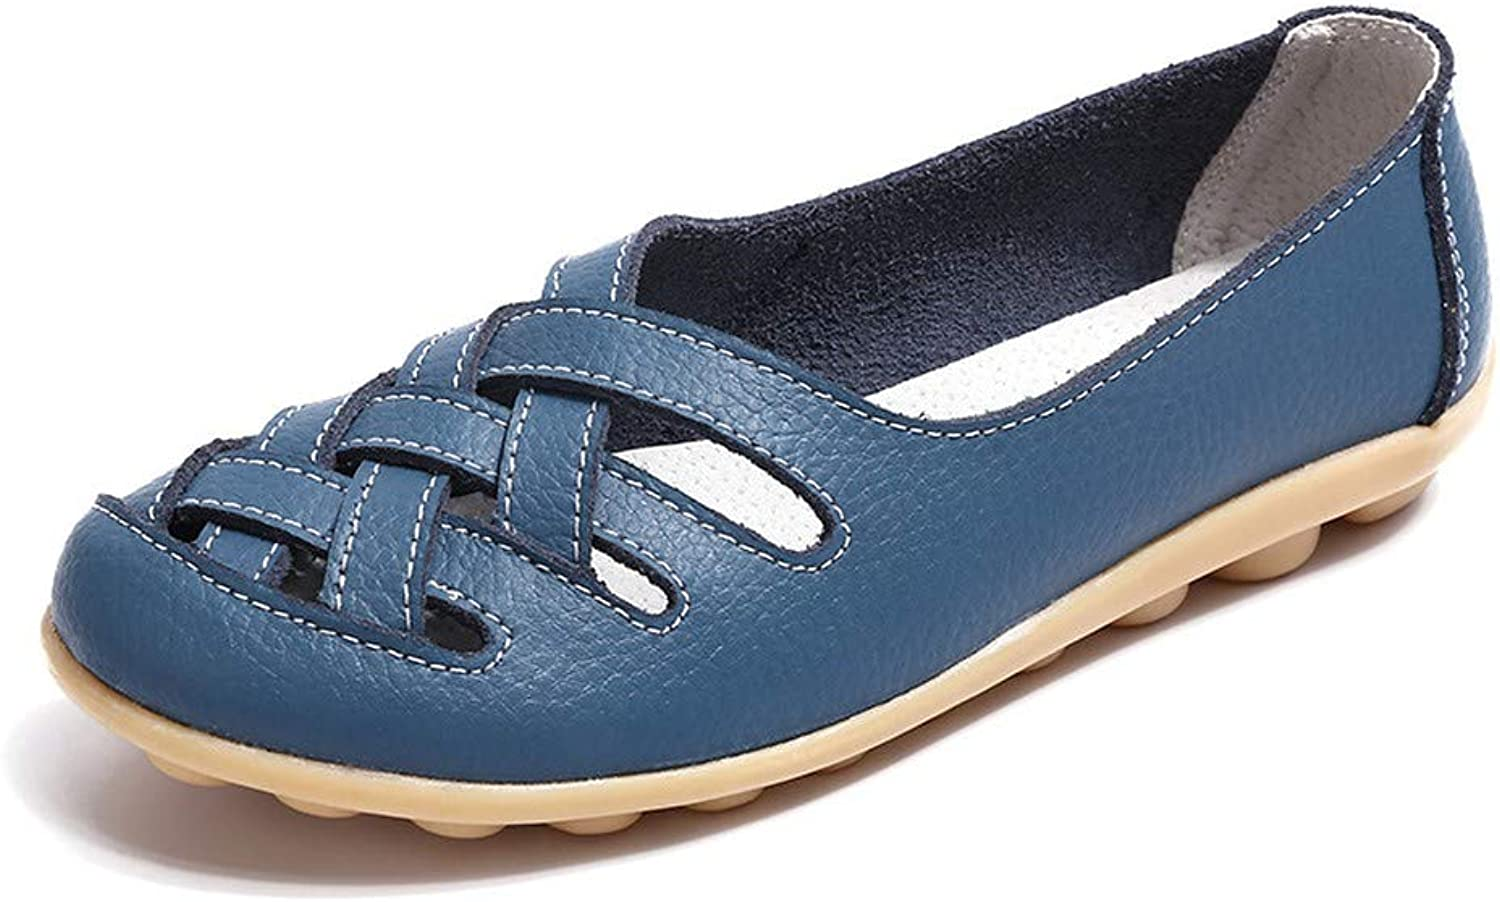 BETIY Women's Leather Loafer Casual Flat shoes Rubber Sole shoes